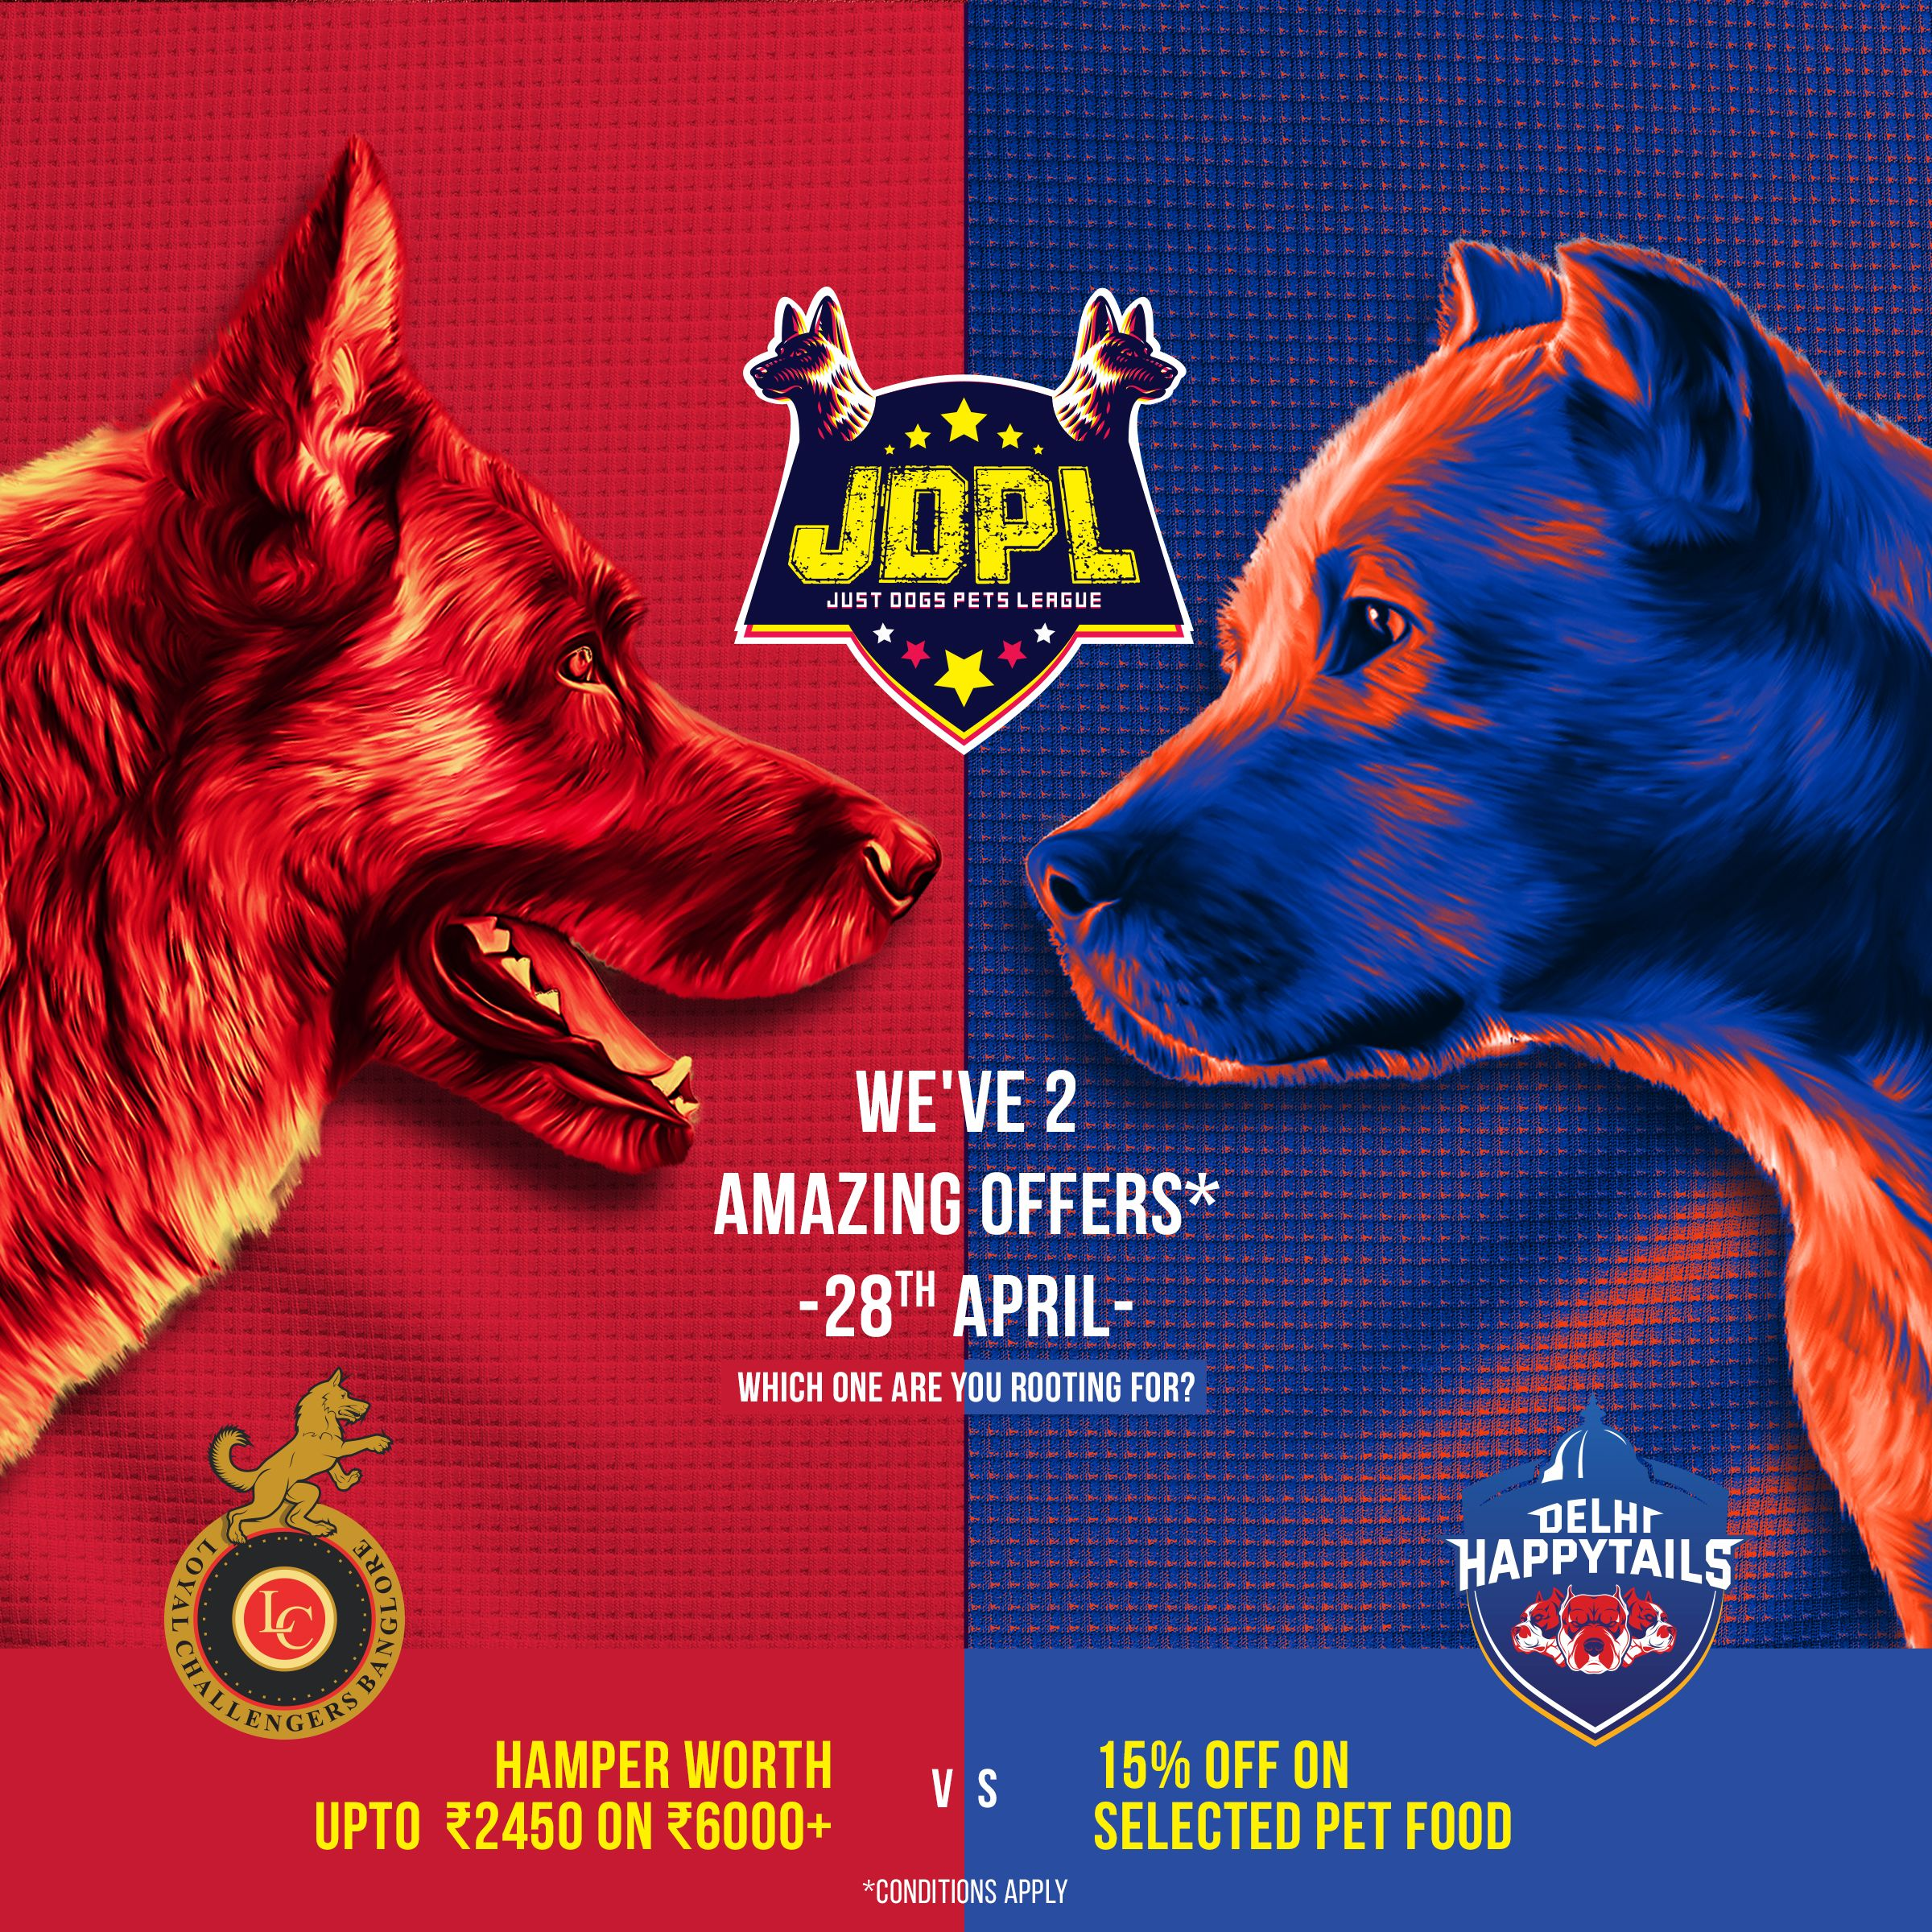 Ipl Is In Full Form And Jdpl Is In No Way Behind Support Loyal Challengers Bangalore And Get A Gift Hamper Worth Rs 2450 Or Support Food Animals Pets Pet Bed